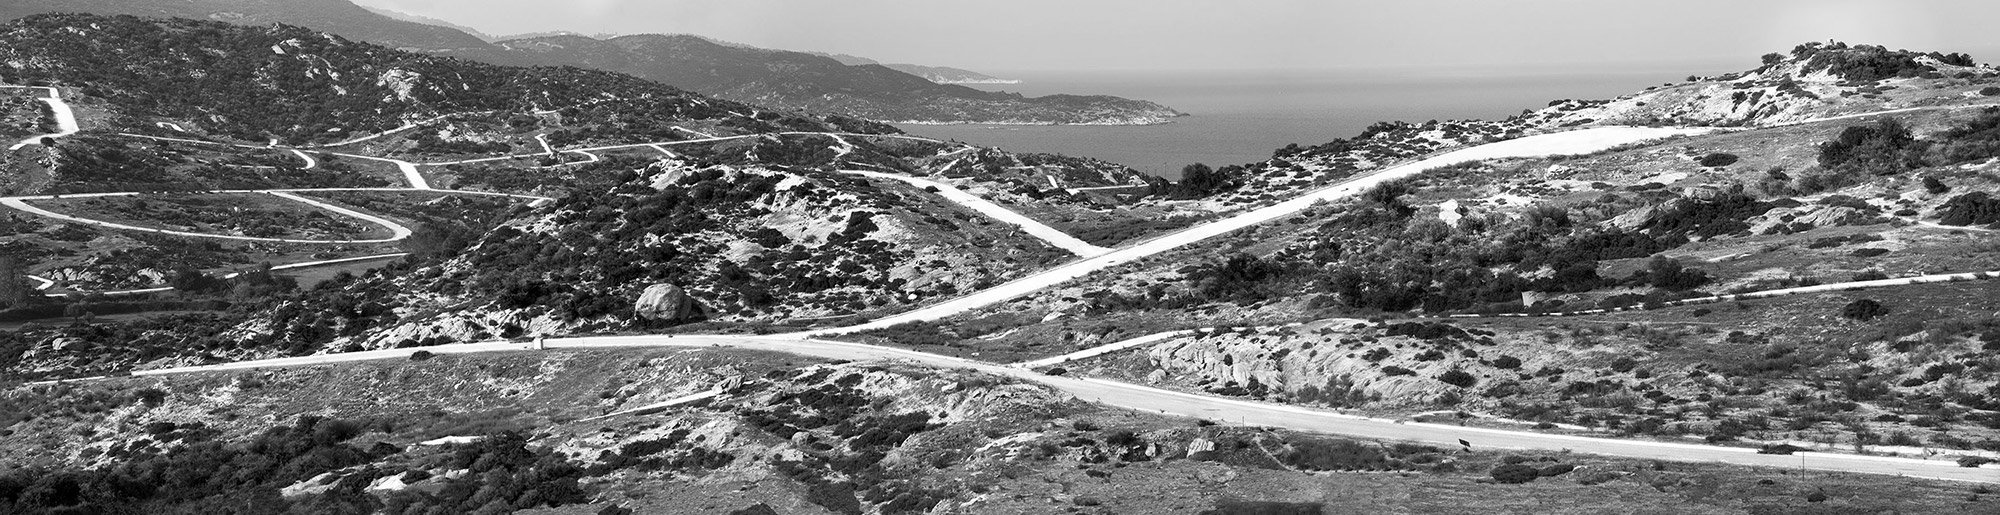 Roads and Ways 4 - Sithonia, Greece